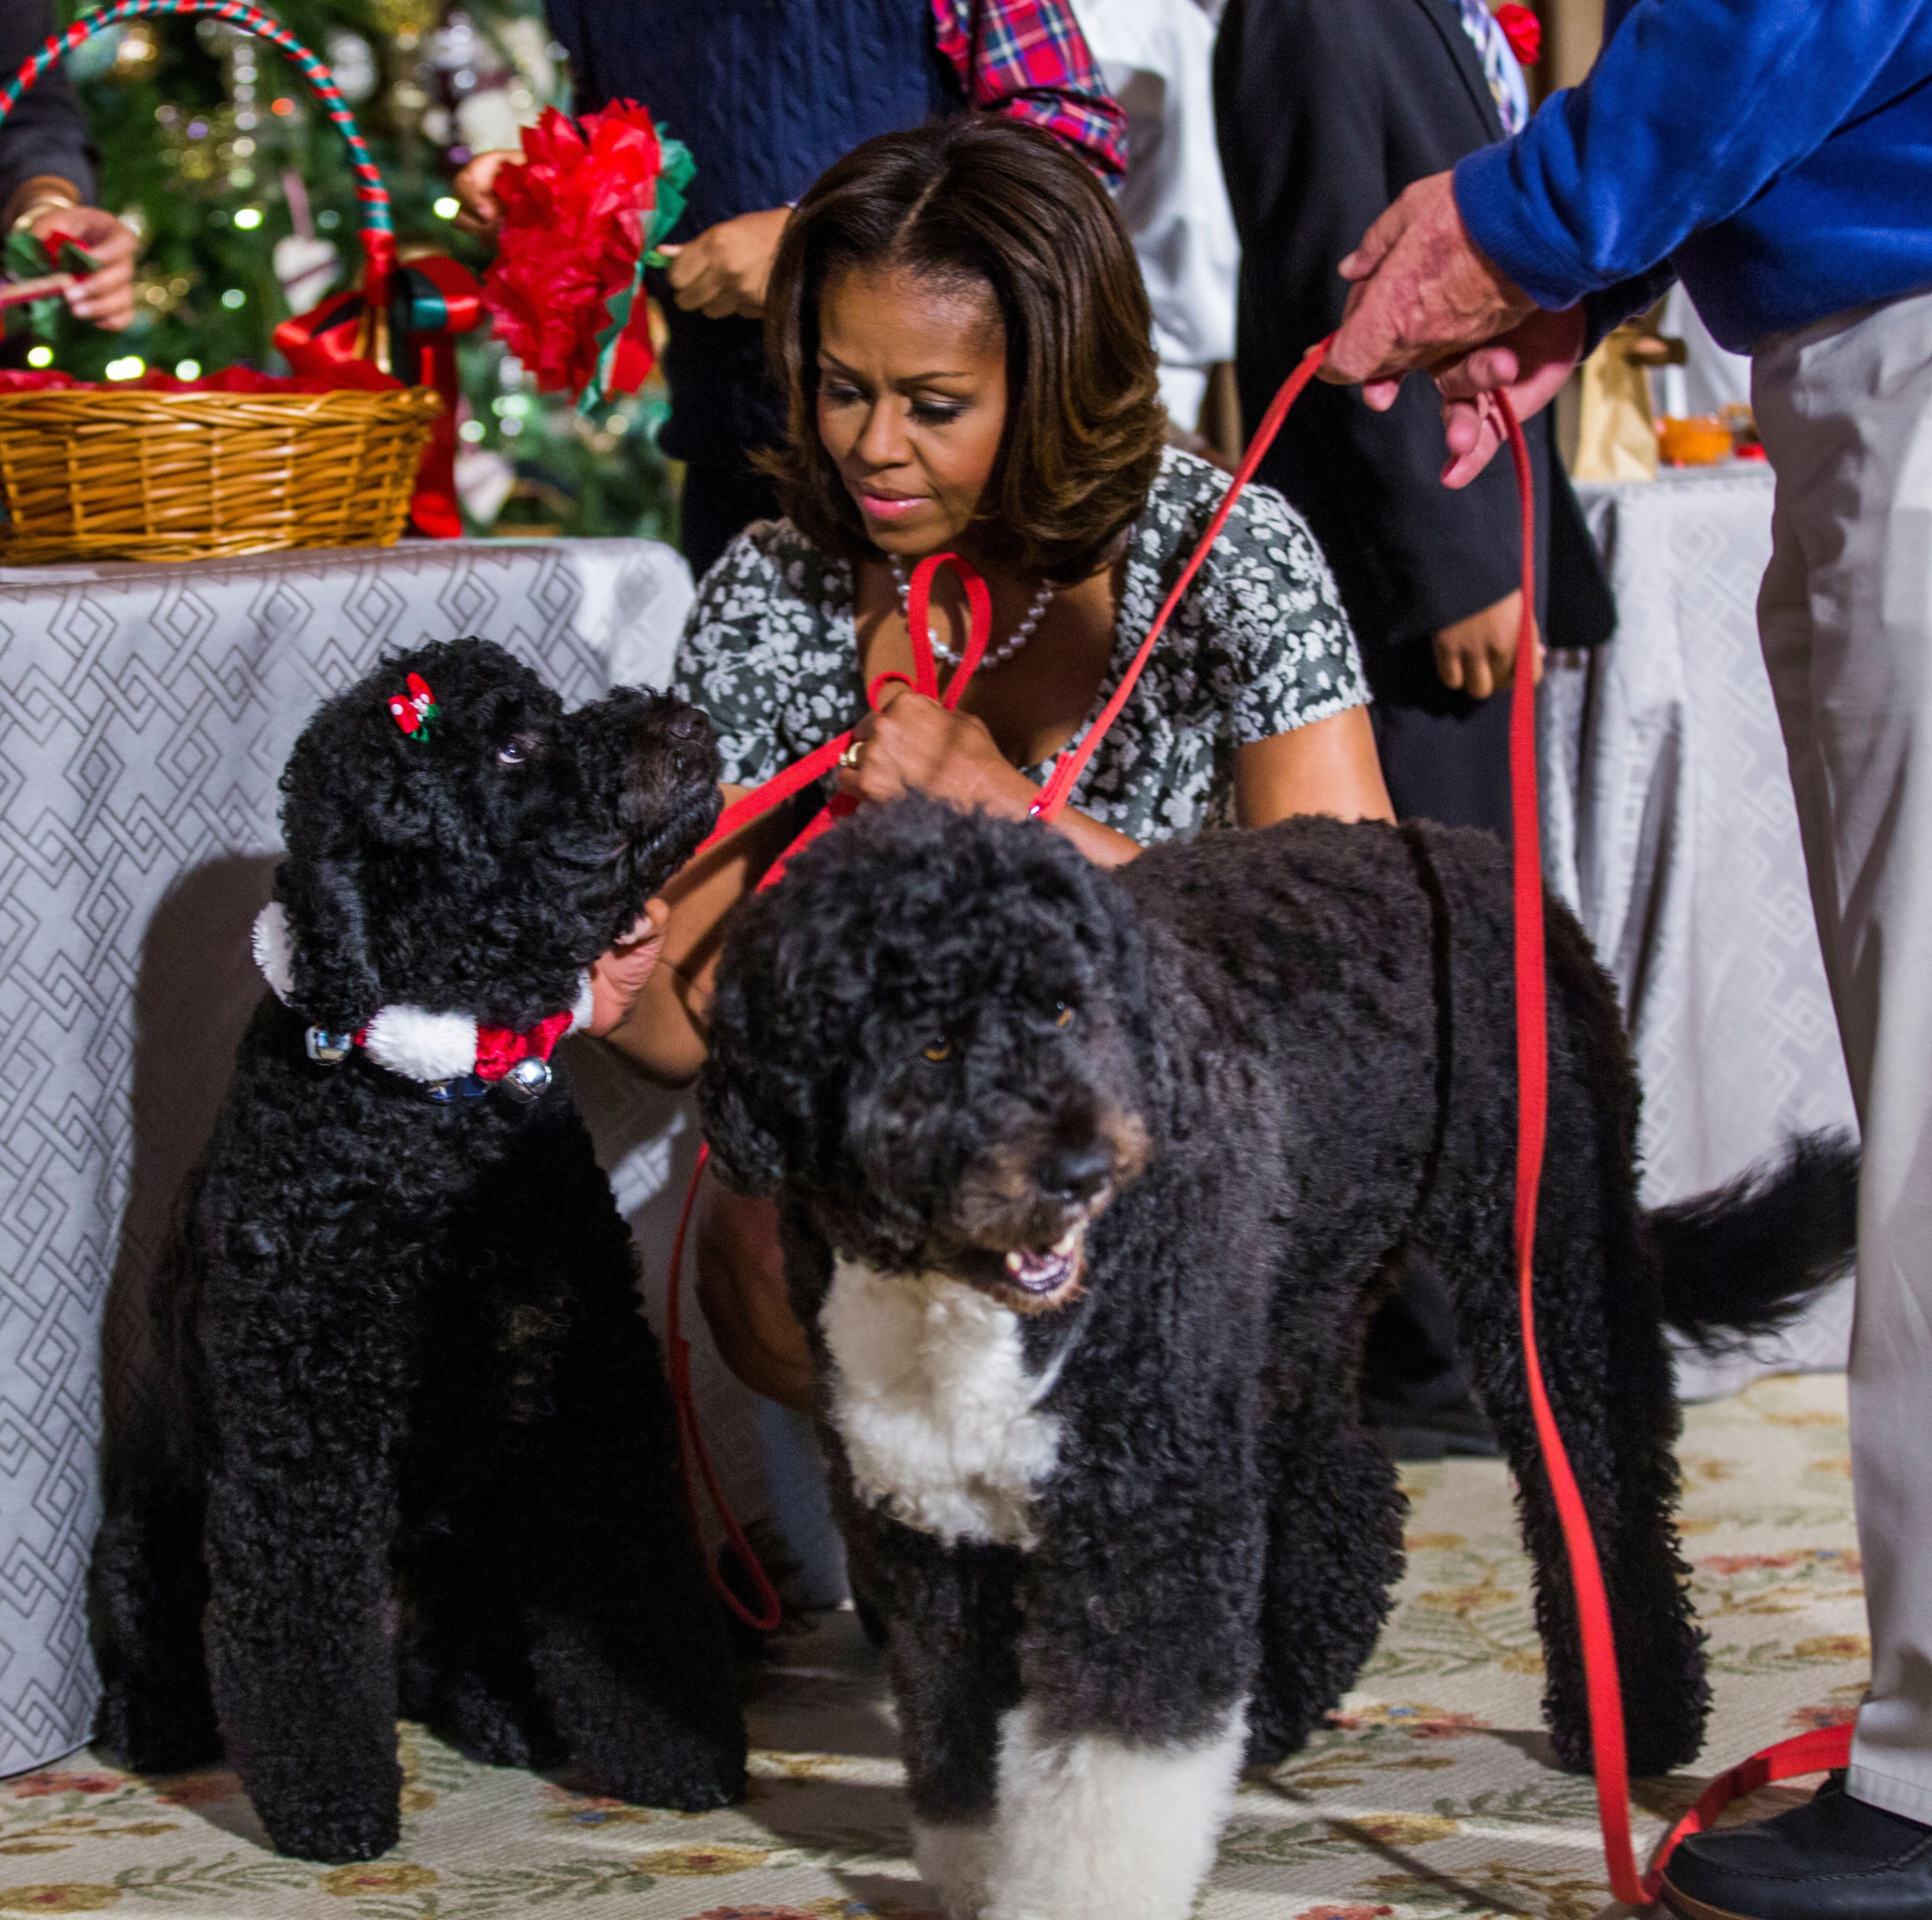 US First Lady Michelle Obama with the family dogs Sunny (L) and Bo (R) during an event to preview the holiday decorations at the White House in Washington, DC. (Photo by Brooks Kraft LLC/Corbis via Getty Images)